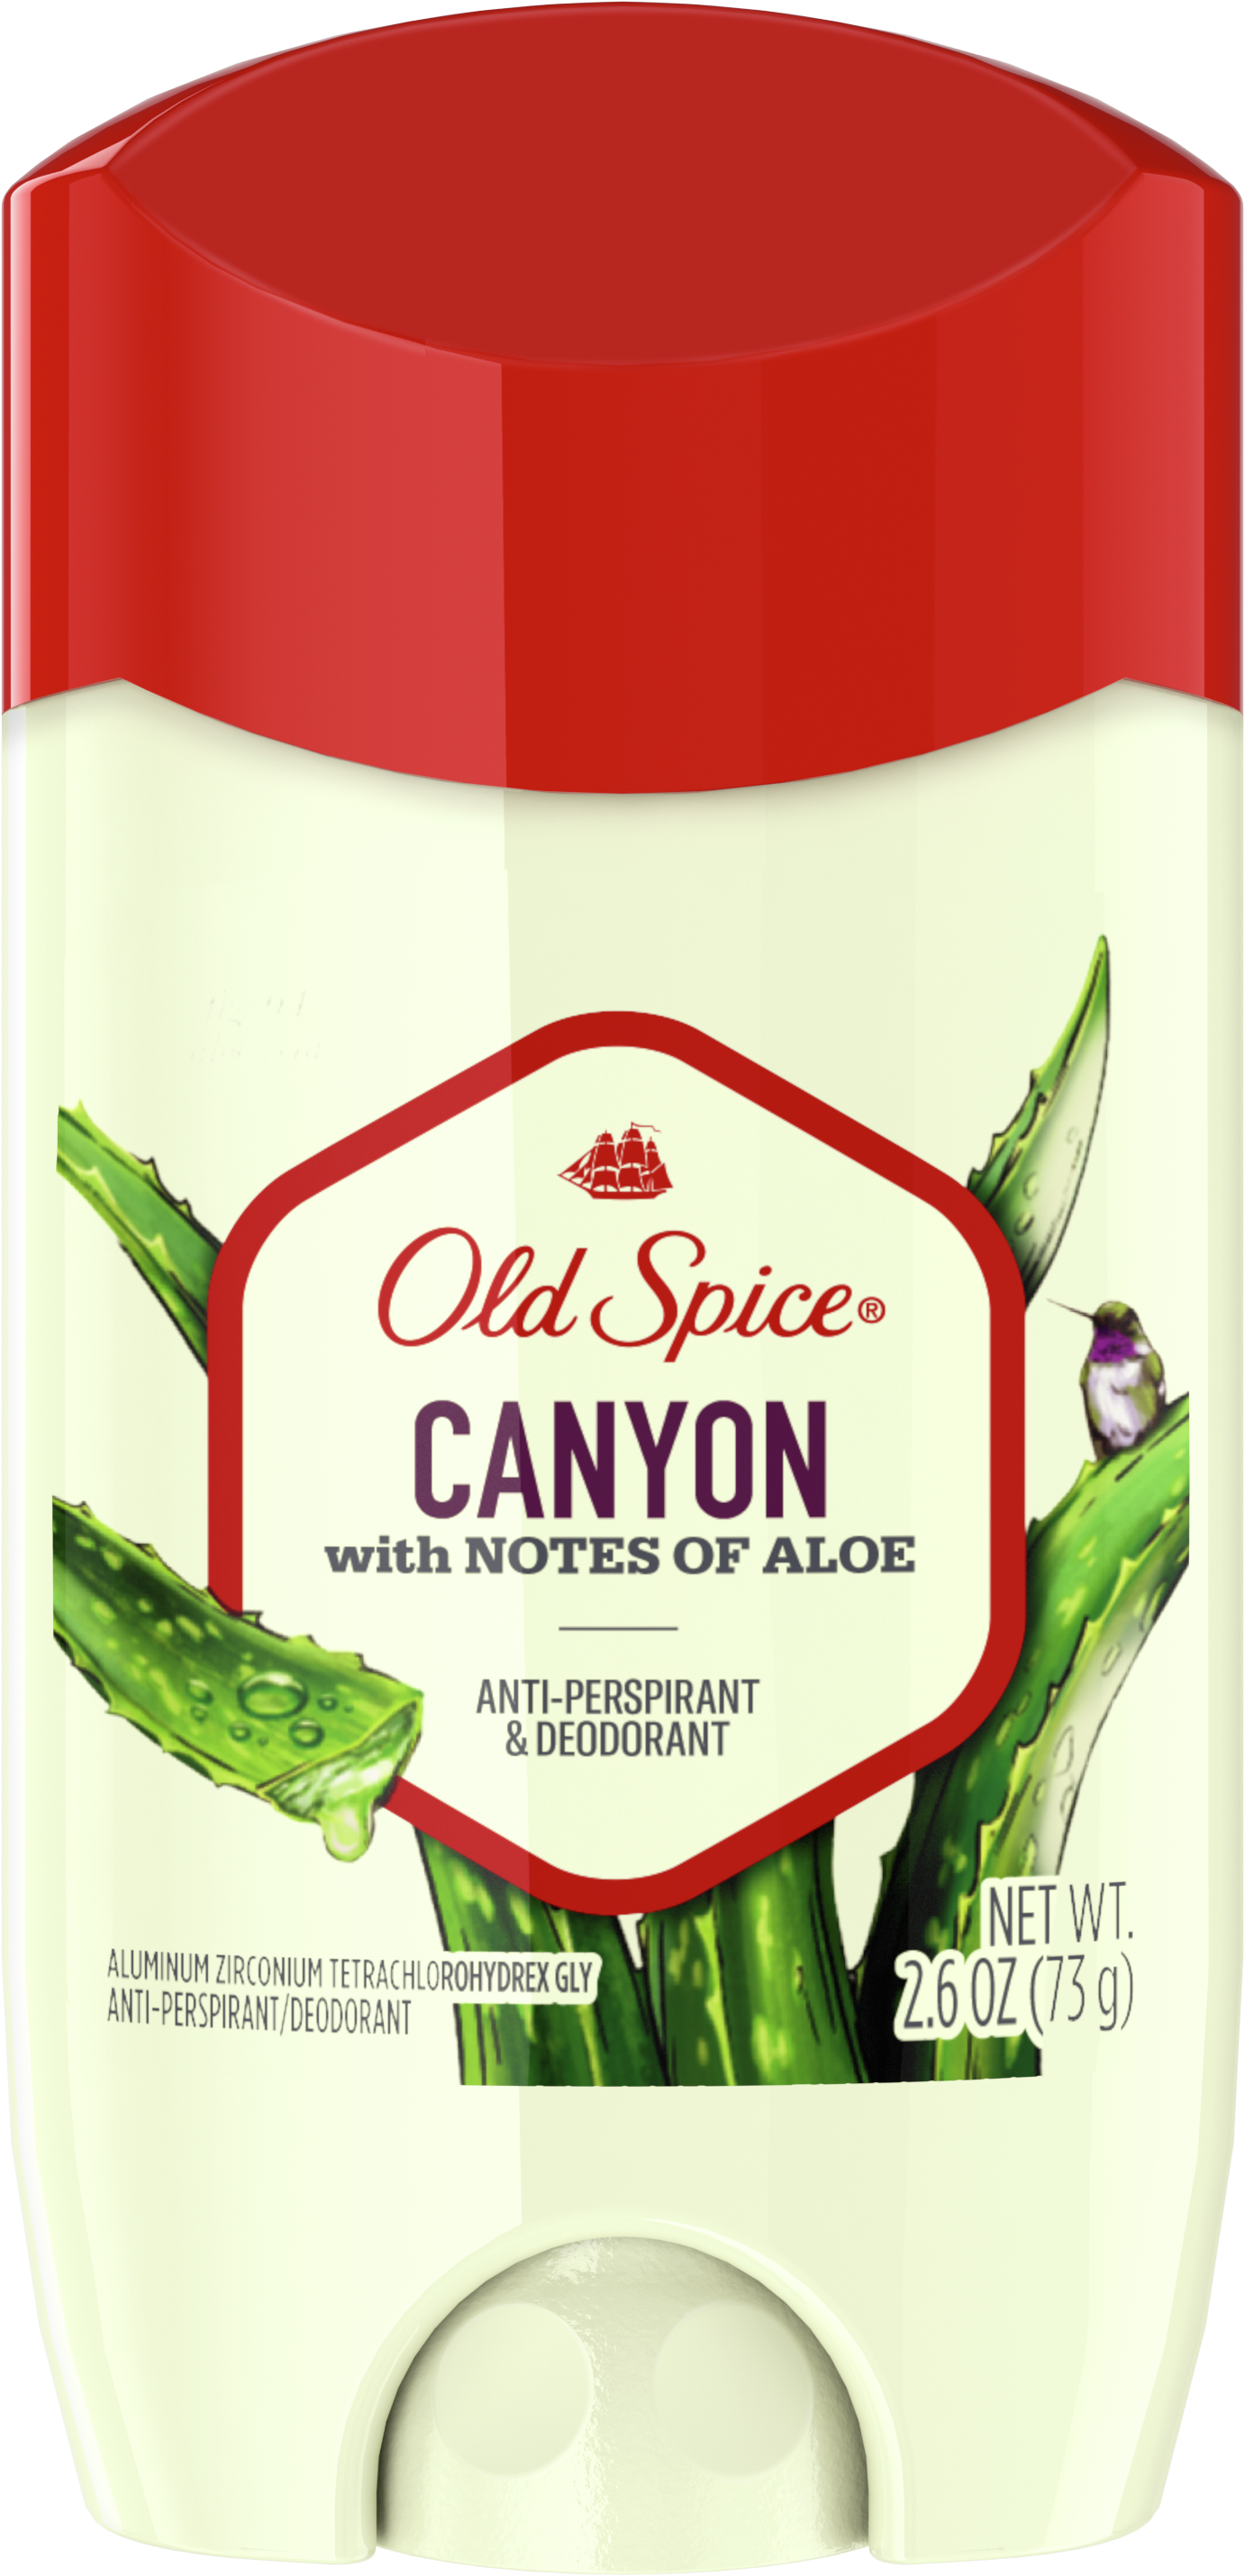 Canyon with Aloe Antiperspirant & Deodorant